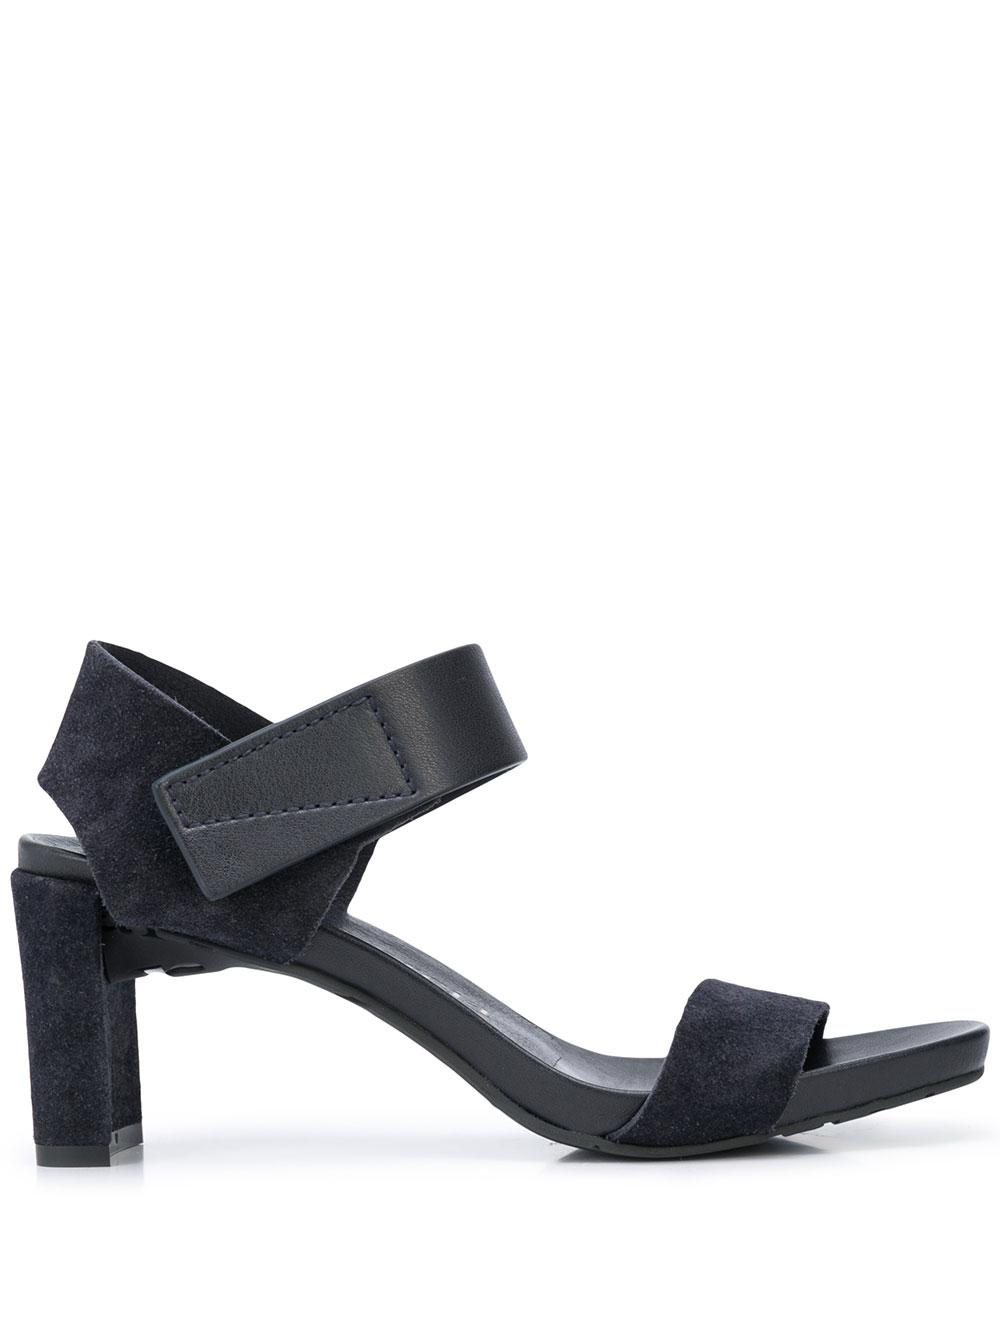 Suede Block Heel With Velcro Ankle Strap